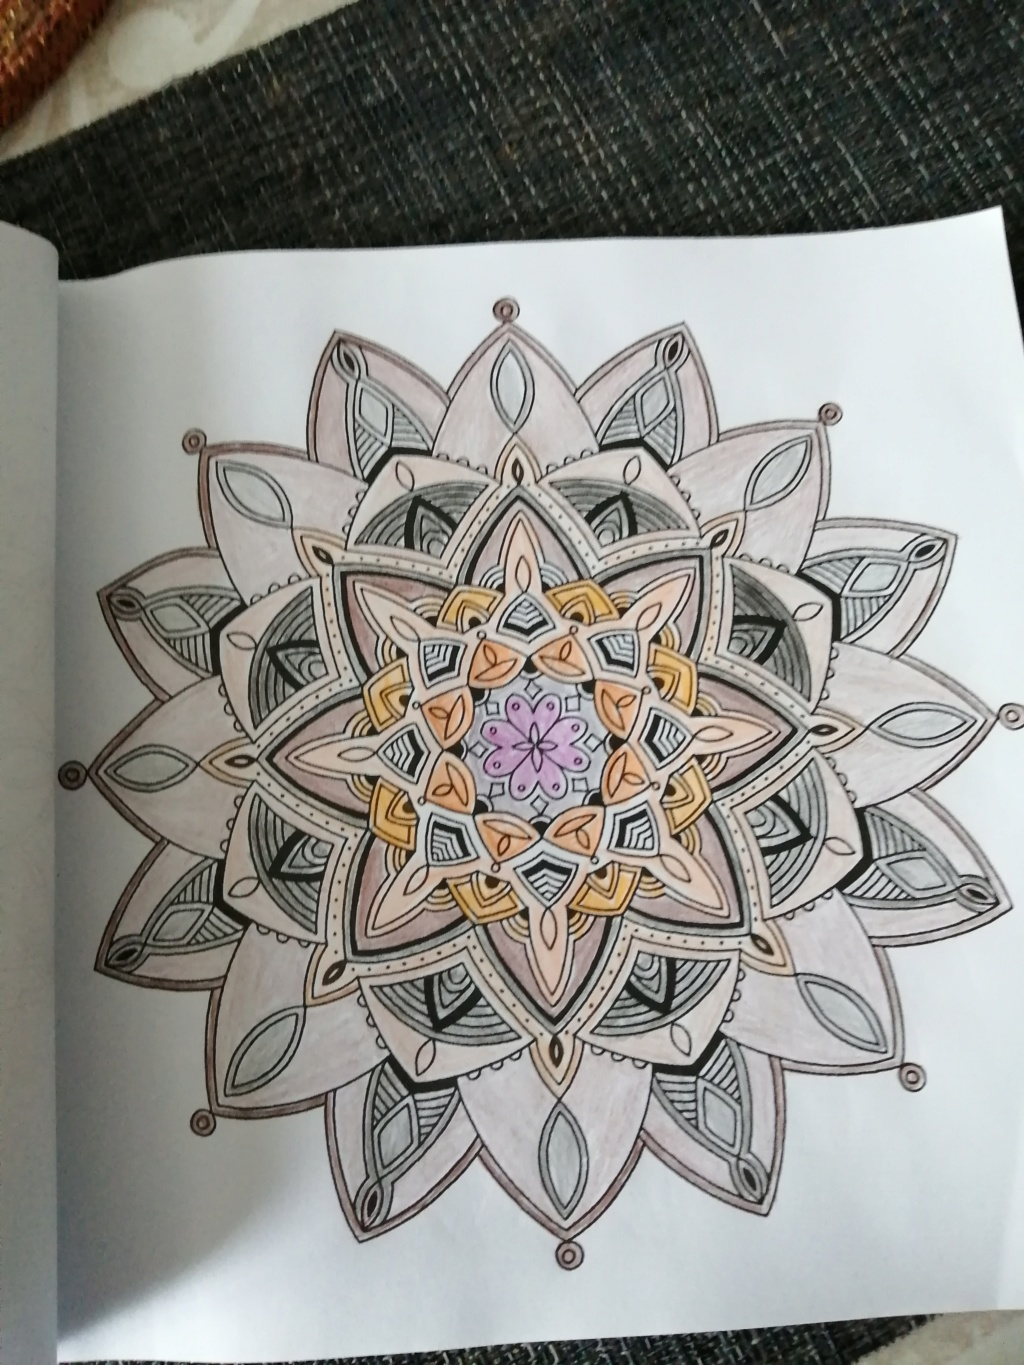 coloriage anti-stress pour adulte - Page 16 6010